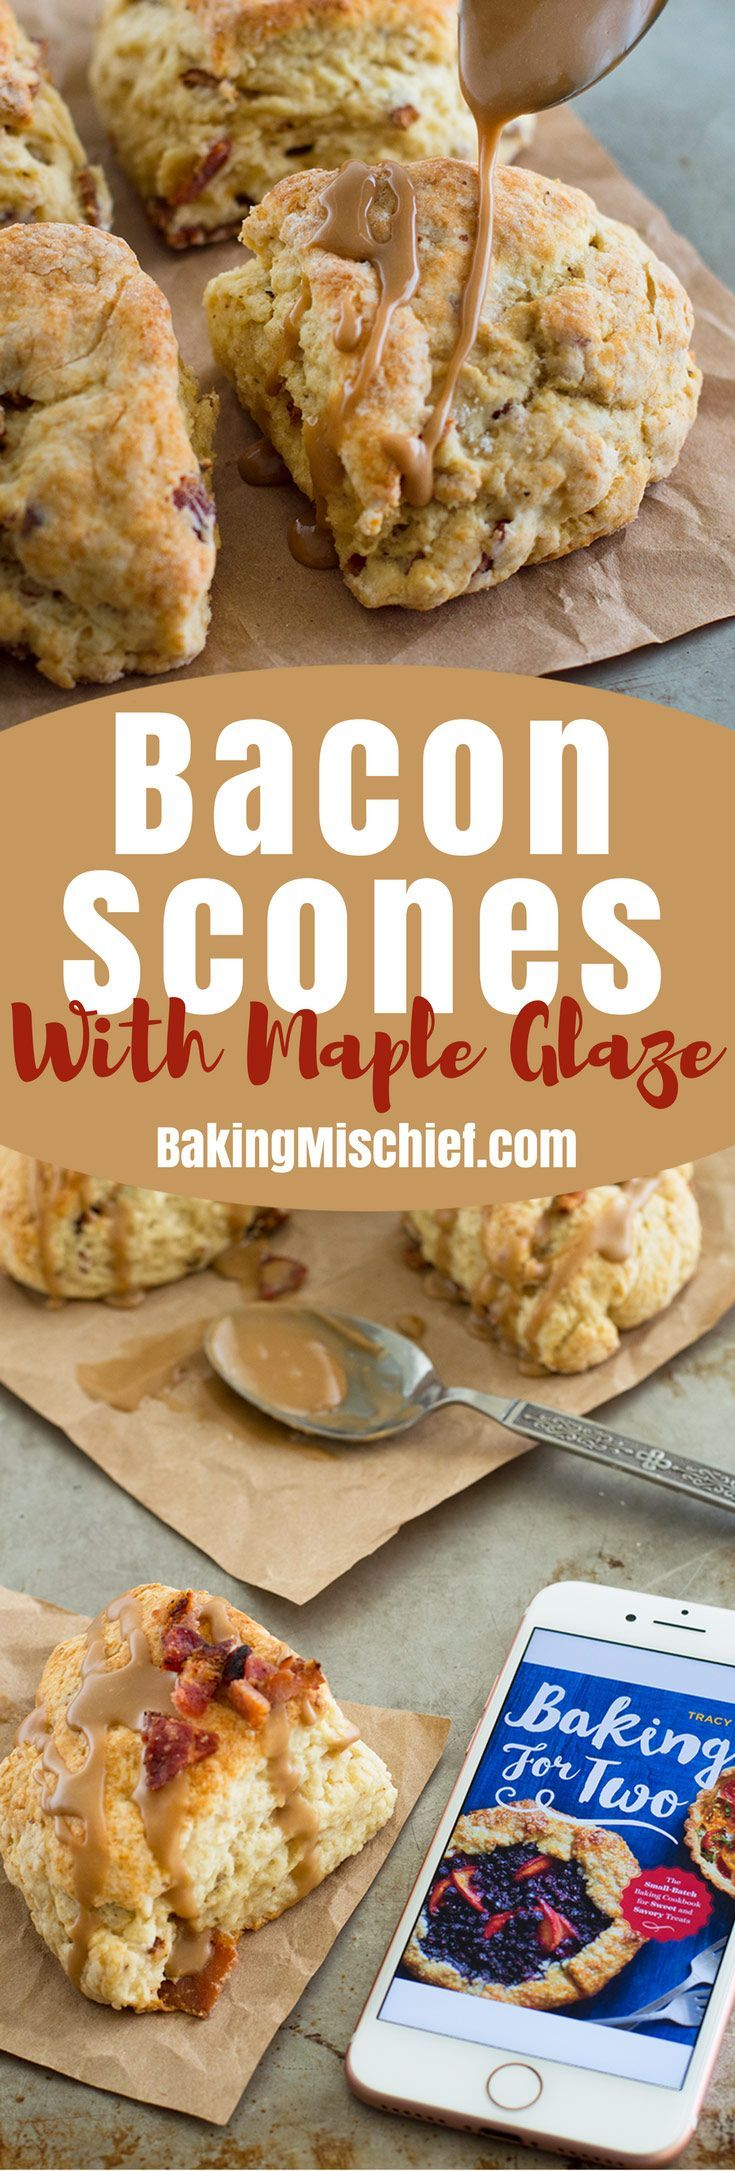 These small-batch Bacon Scones with Maple Glaze are one of my favorite recipes from my new cookbook, Baking for Two! Recipe includes nutritional information. From BakingMischief.com